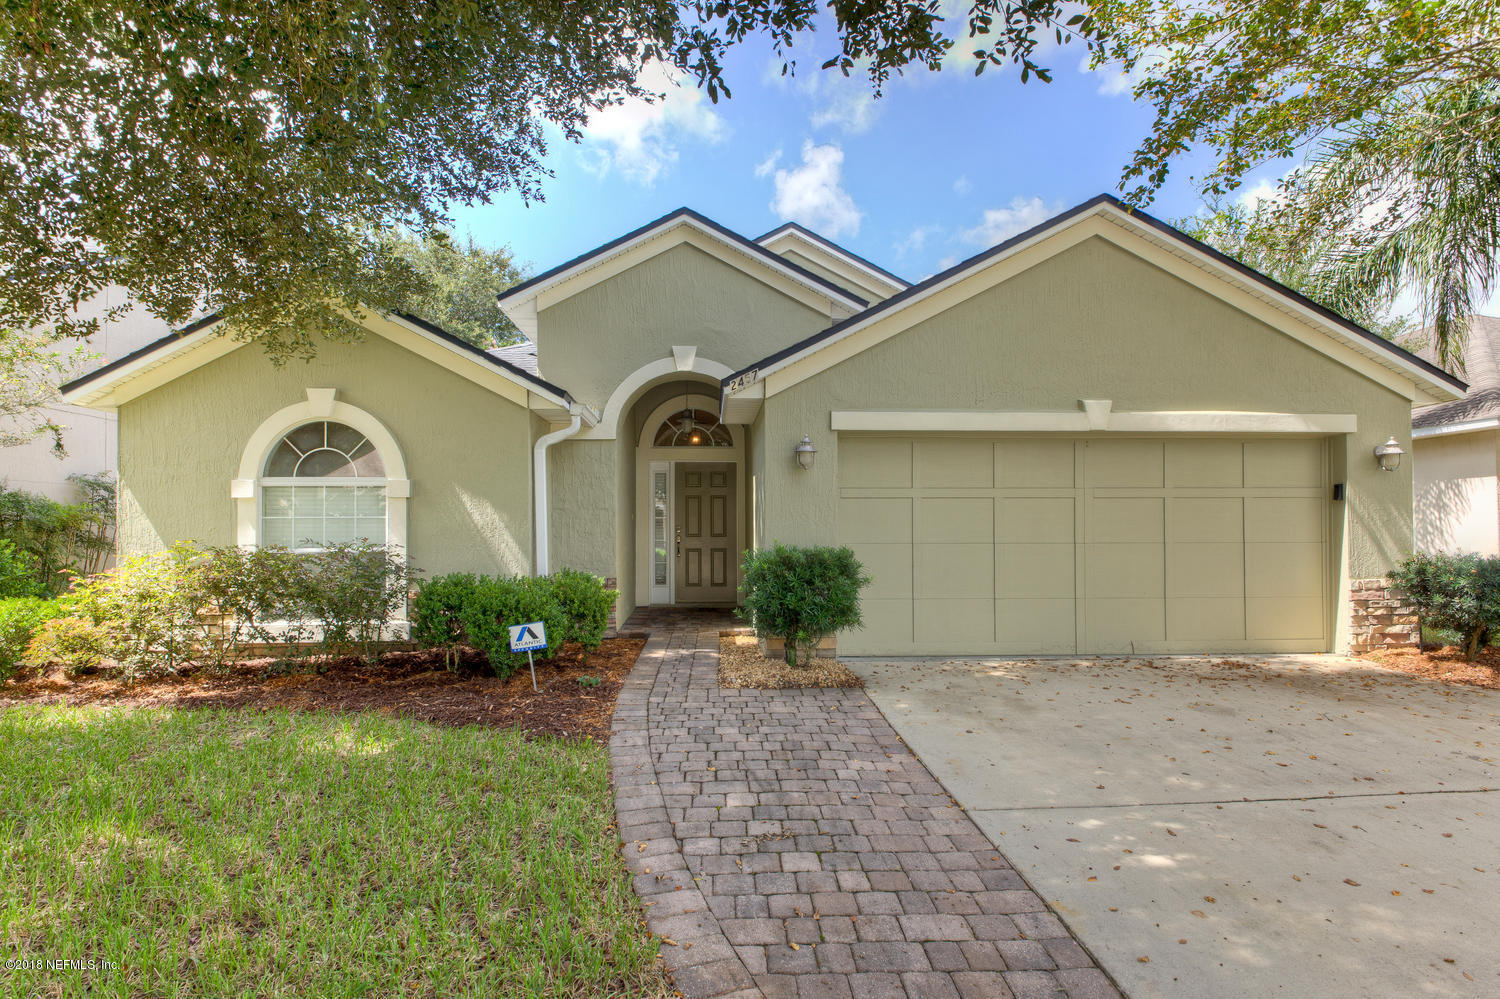 2457 WINCHESTER, ST AUGUSTINE, FLORIDA 32092, 3 Bedrooms Bedrooms, ,2 BathroomsBathrooms,Residential - single family,For sale,WINCHESTER,952778